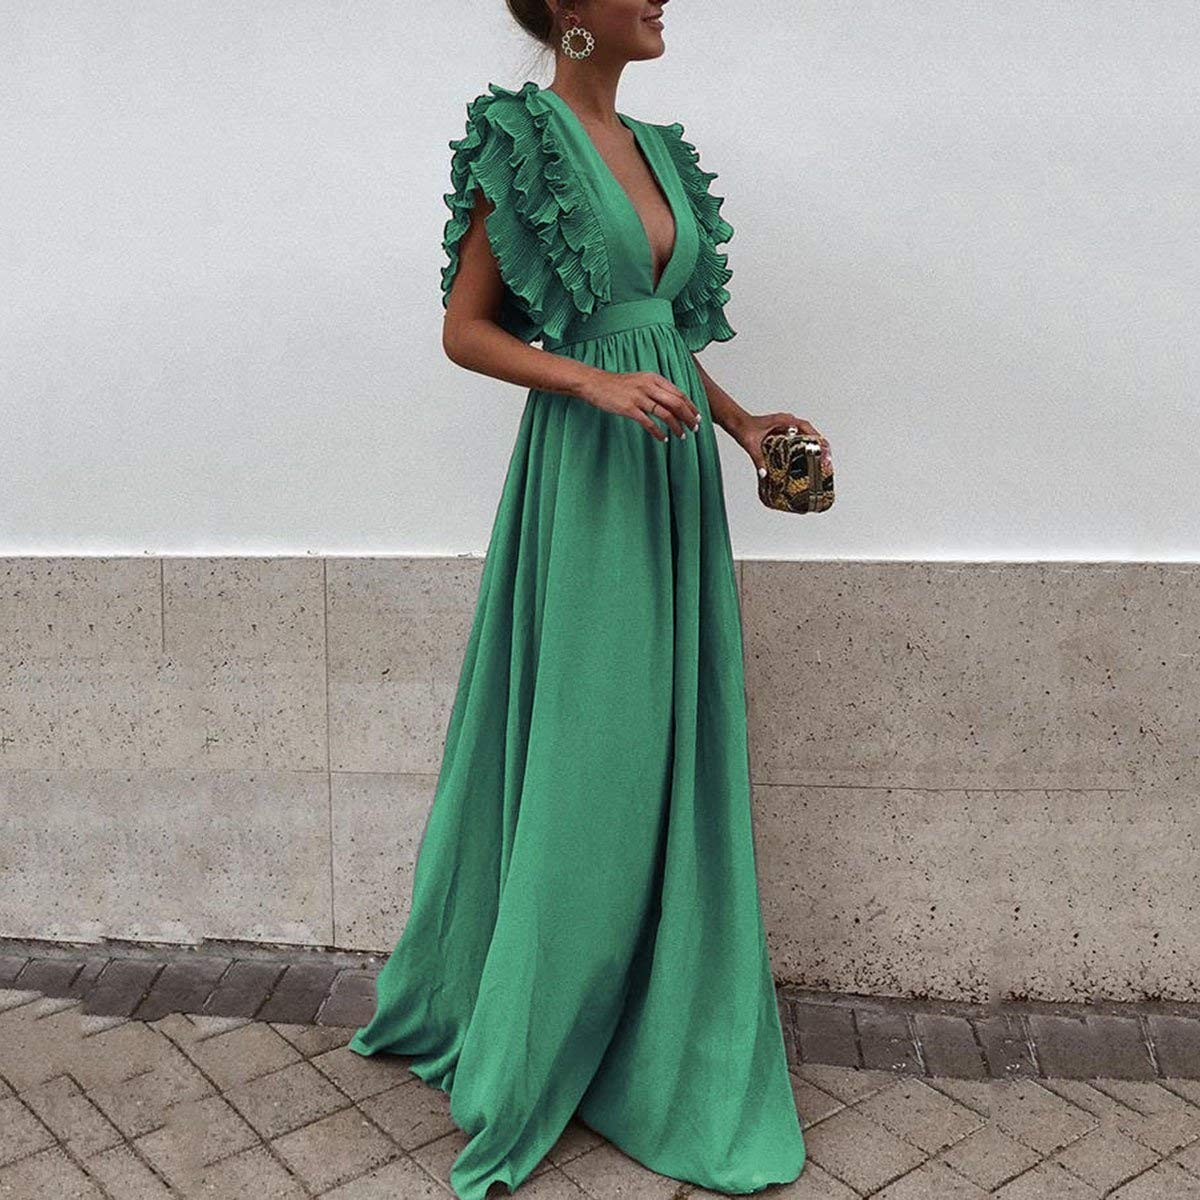 Women Sexy Maxi Dress Fashion Wedding Cocktail Party Vintage Fly Sleeve Backless Elegant Ball Gown Event (US:6, Green)